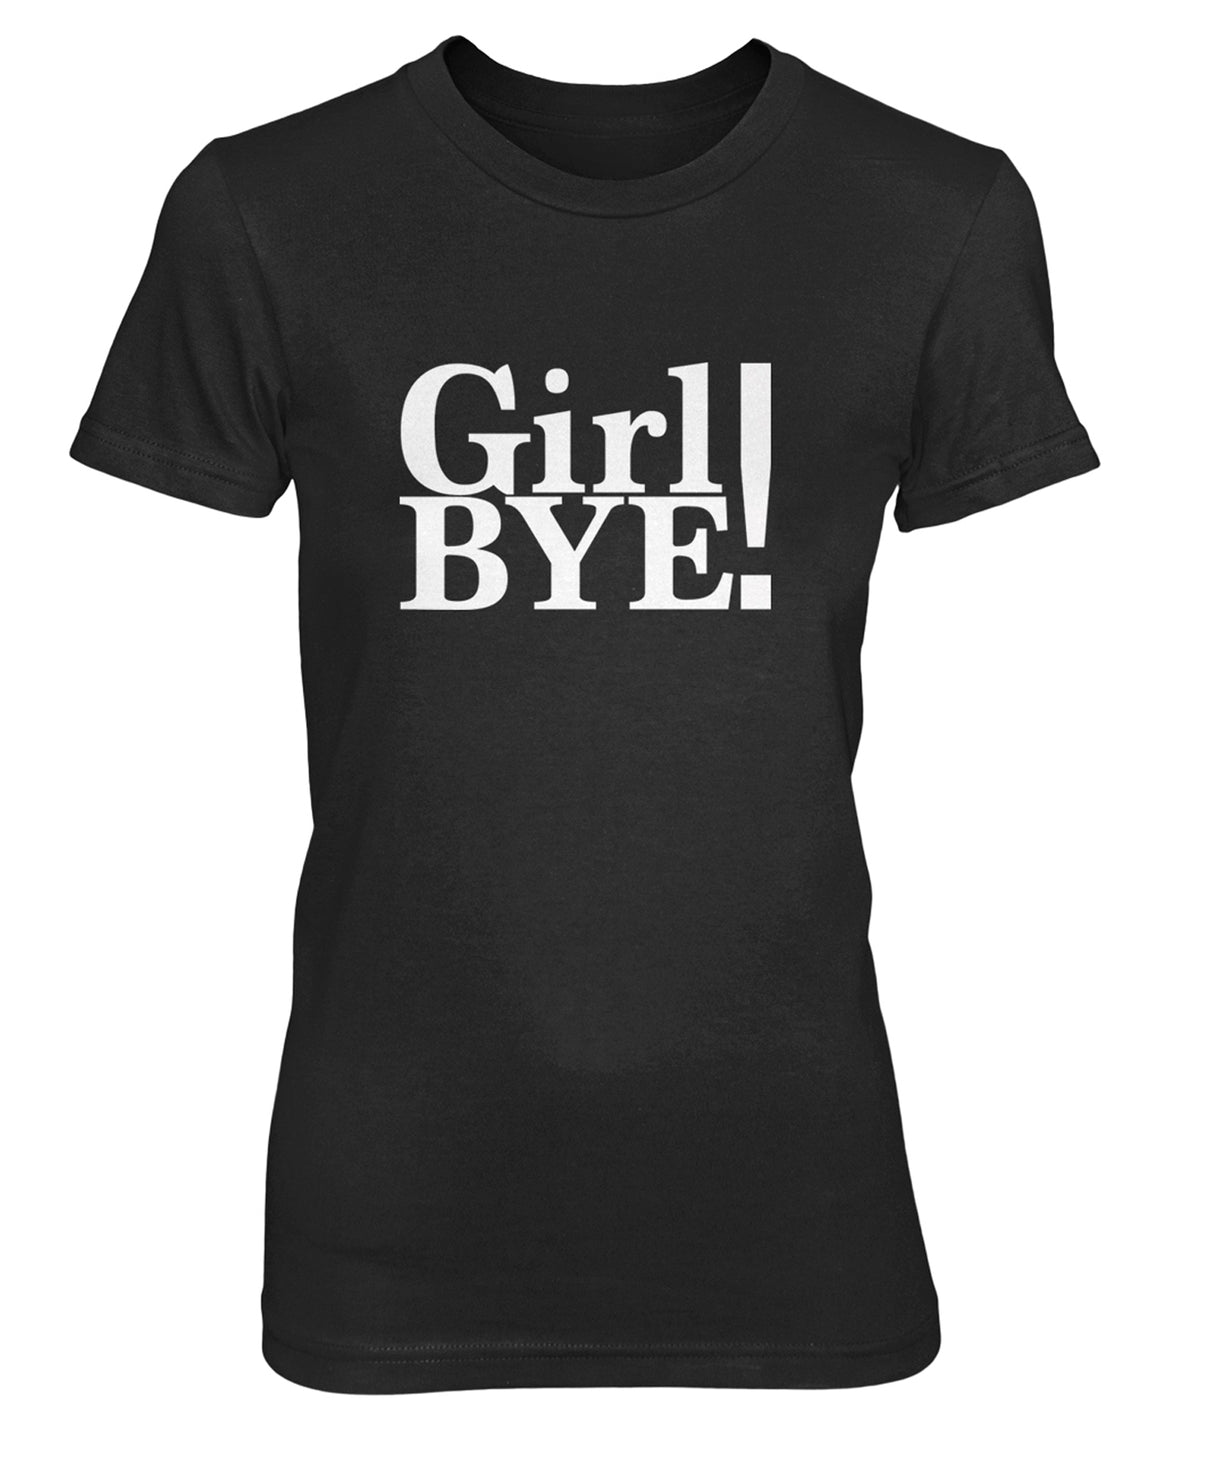 GIRL BYE - women's short sleeve tee